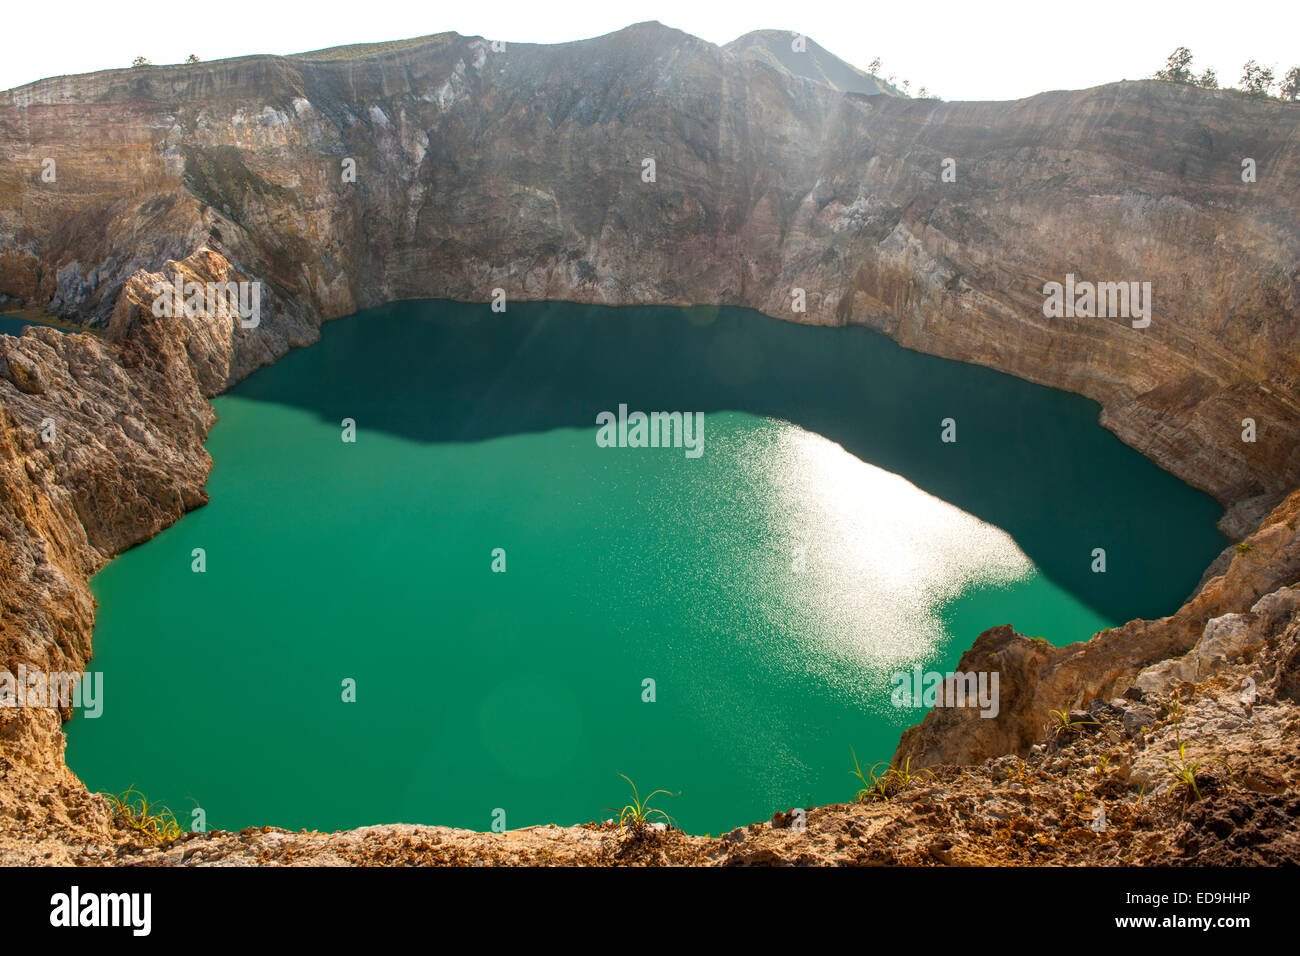 Tiwu Ata Polo ('Bewitched or Enchanted Lake') one of three crater lakes on the summit of Mount Kelimutu - Stock Image